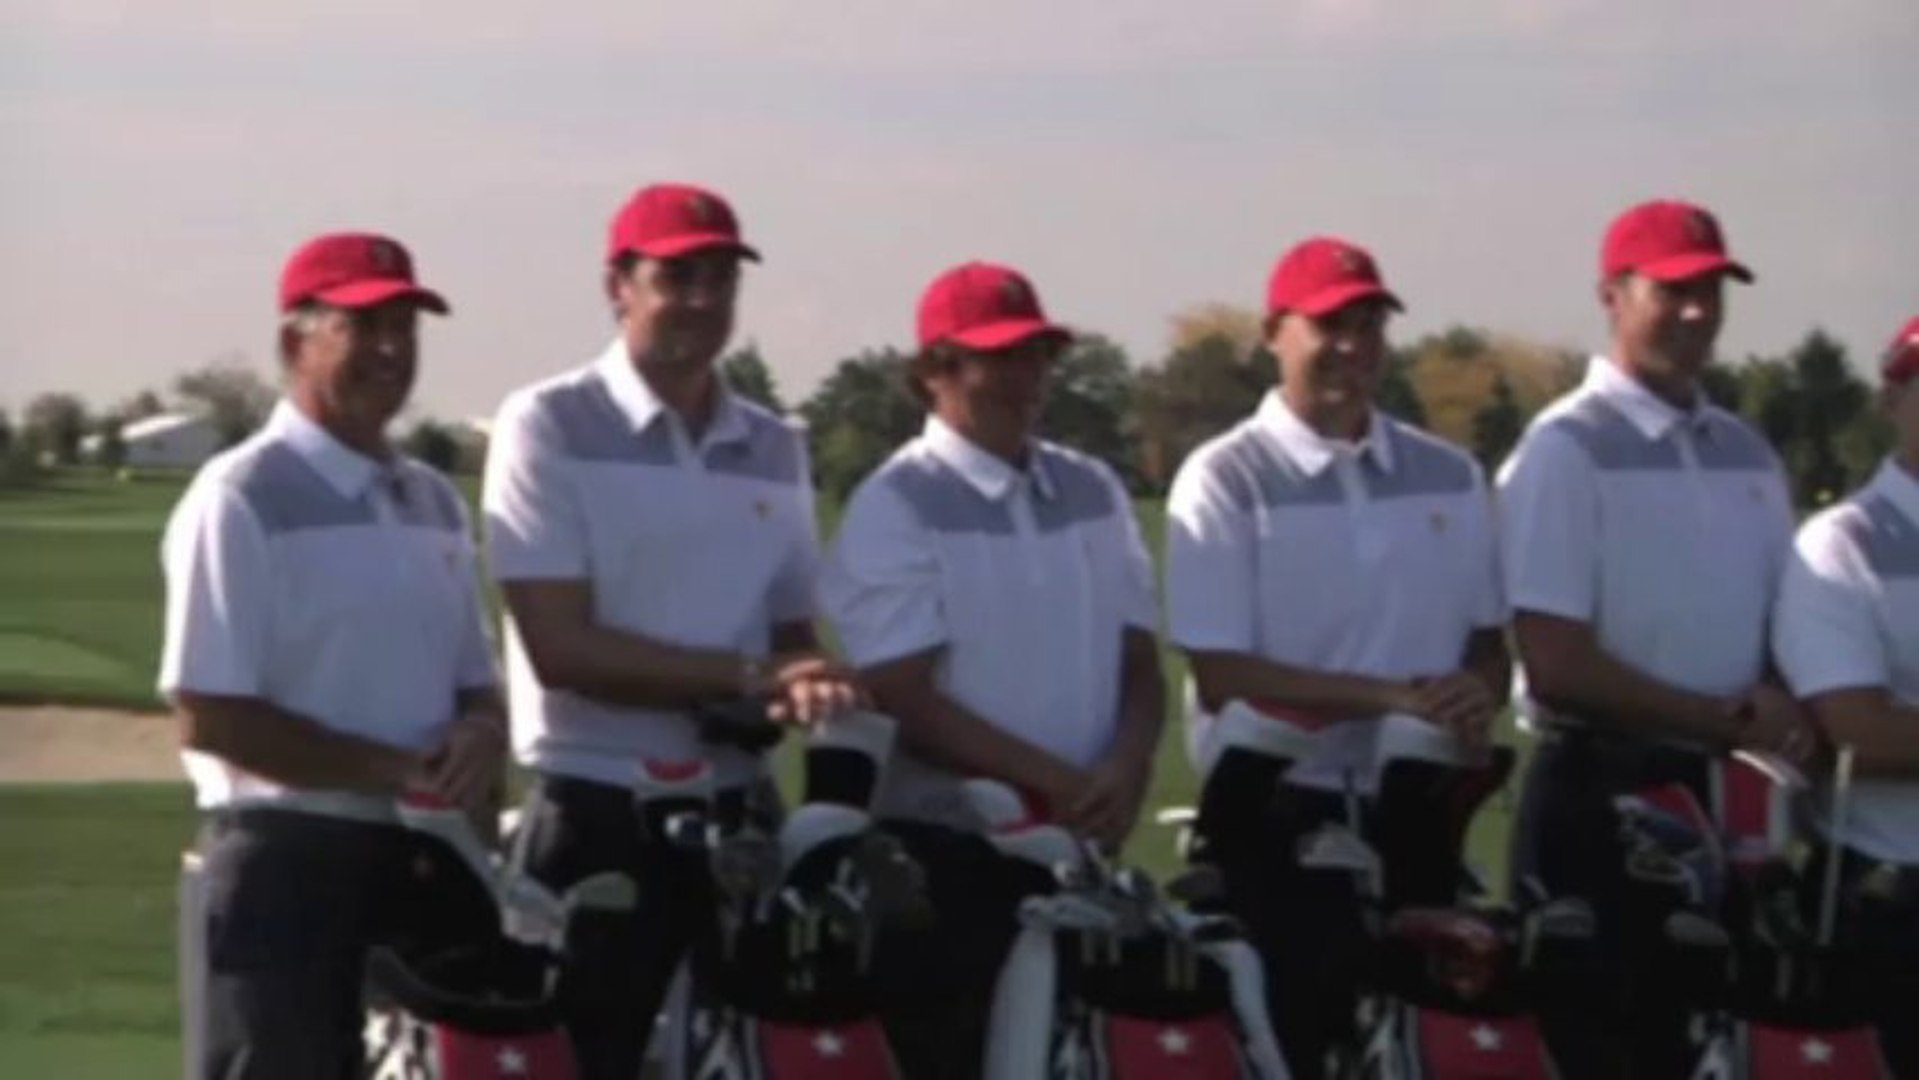 Nicklaus welcomes Presidents Cup home